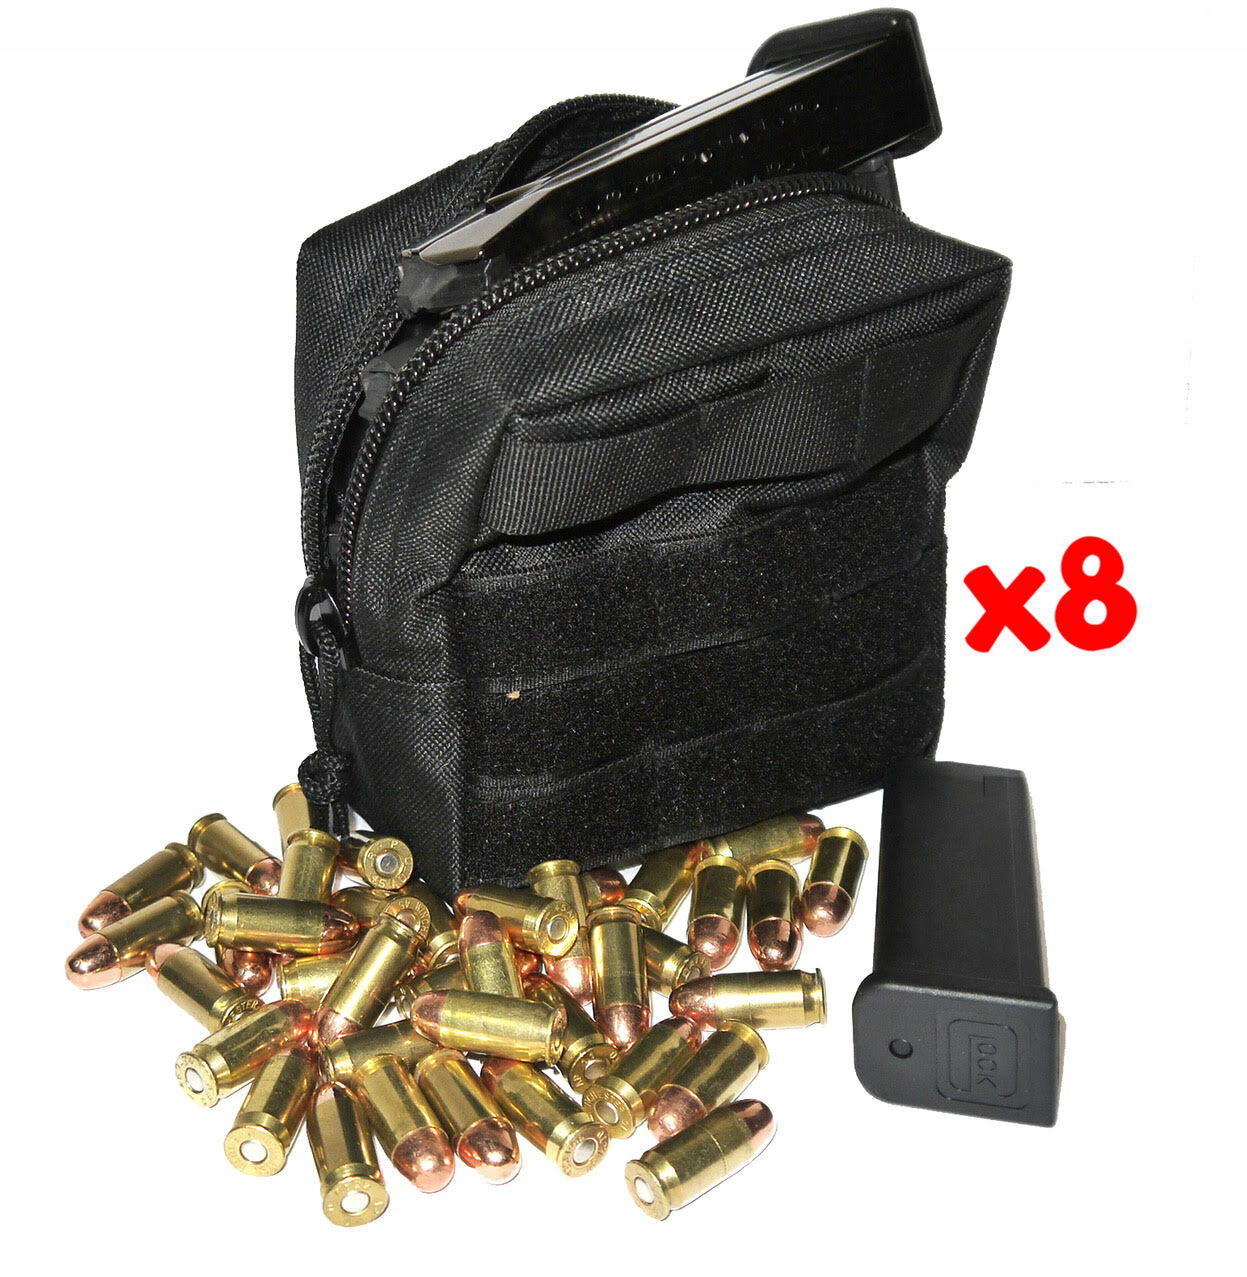 (8) .357 MAG AMMO MODULAR MOLLE UTILITY POUCH FRONT HOOK .357 LOOP STRAP .357 HOOK 357 1158b3